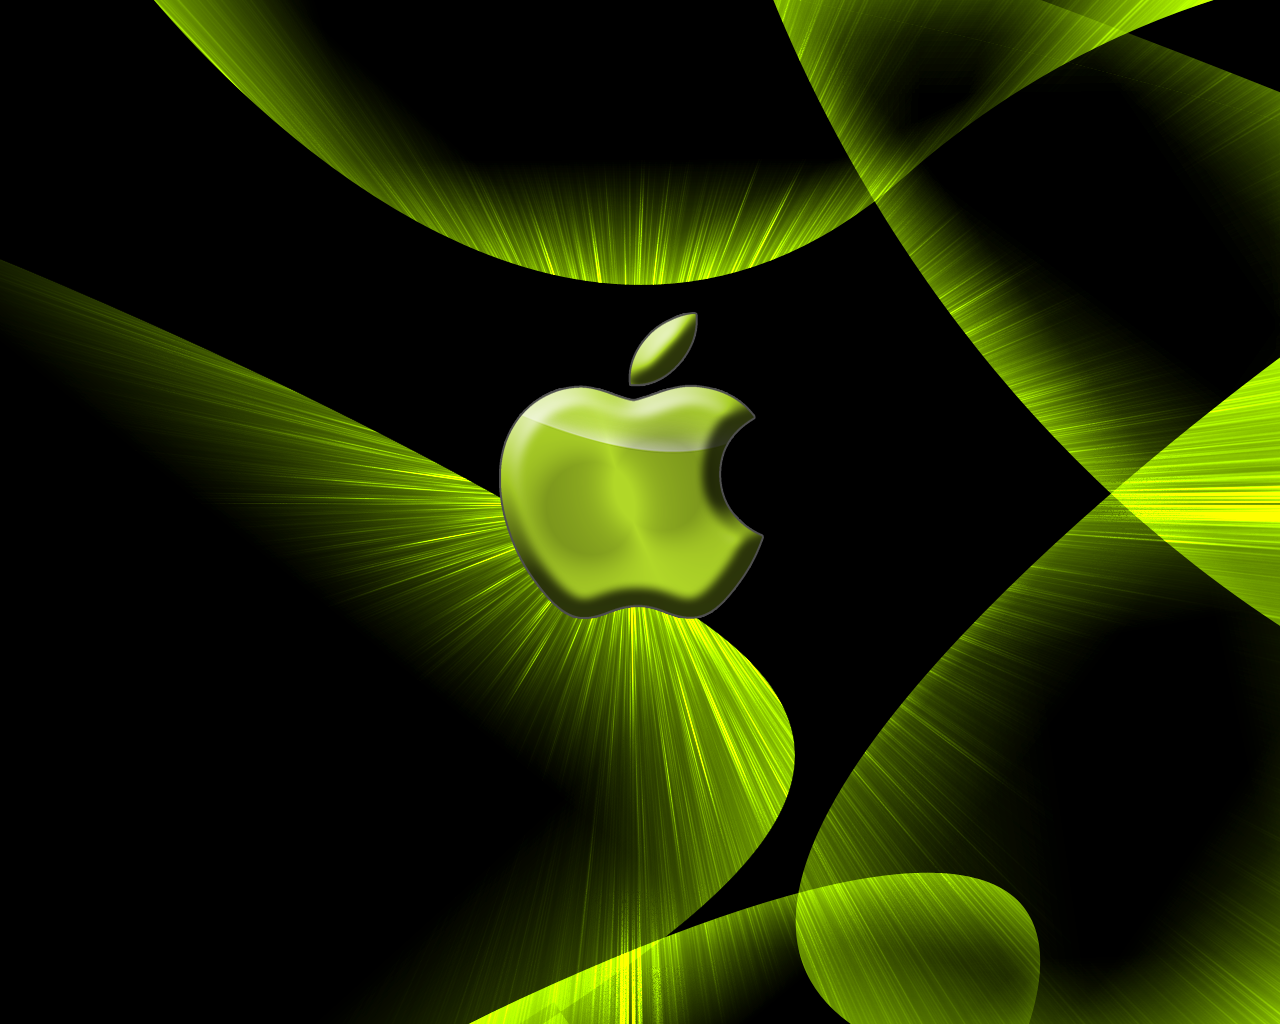 3d Apple Wallpapers | HD Wallpapers Pics